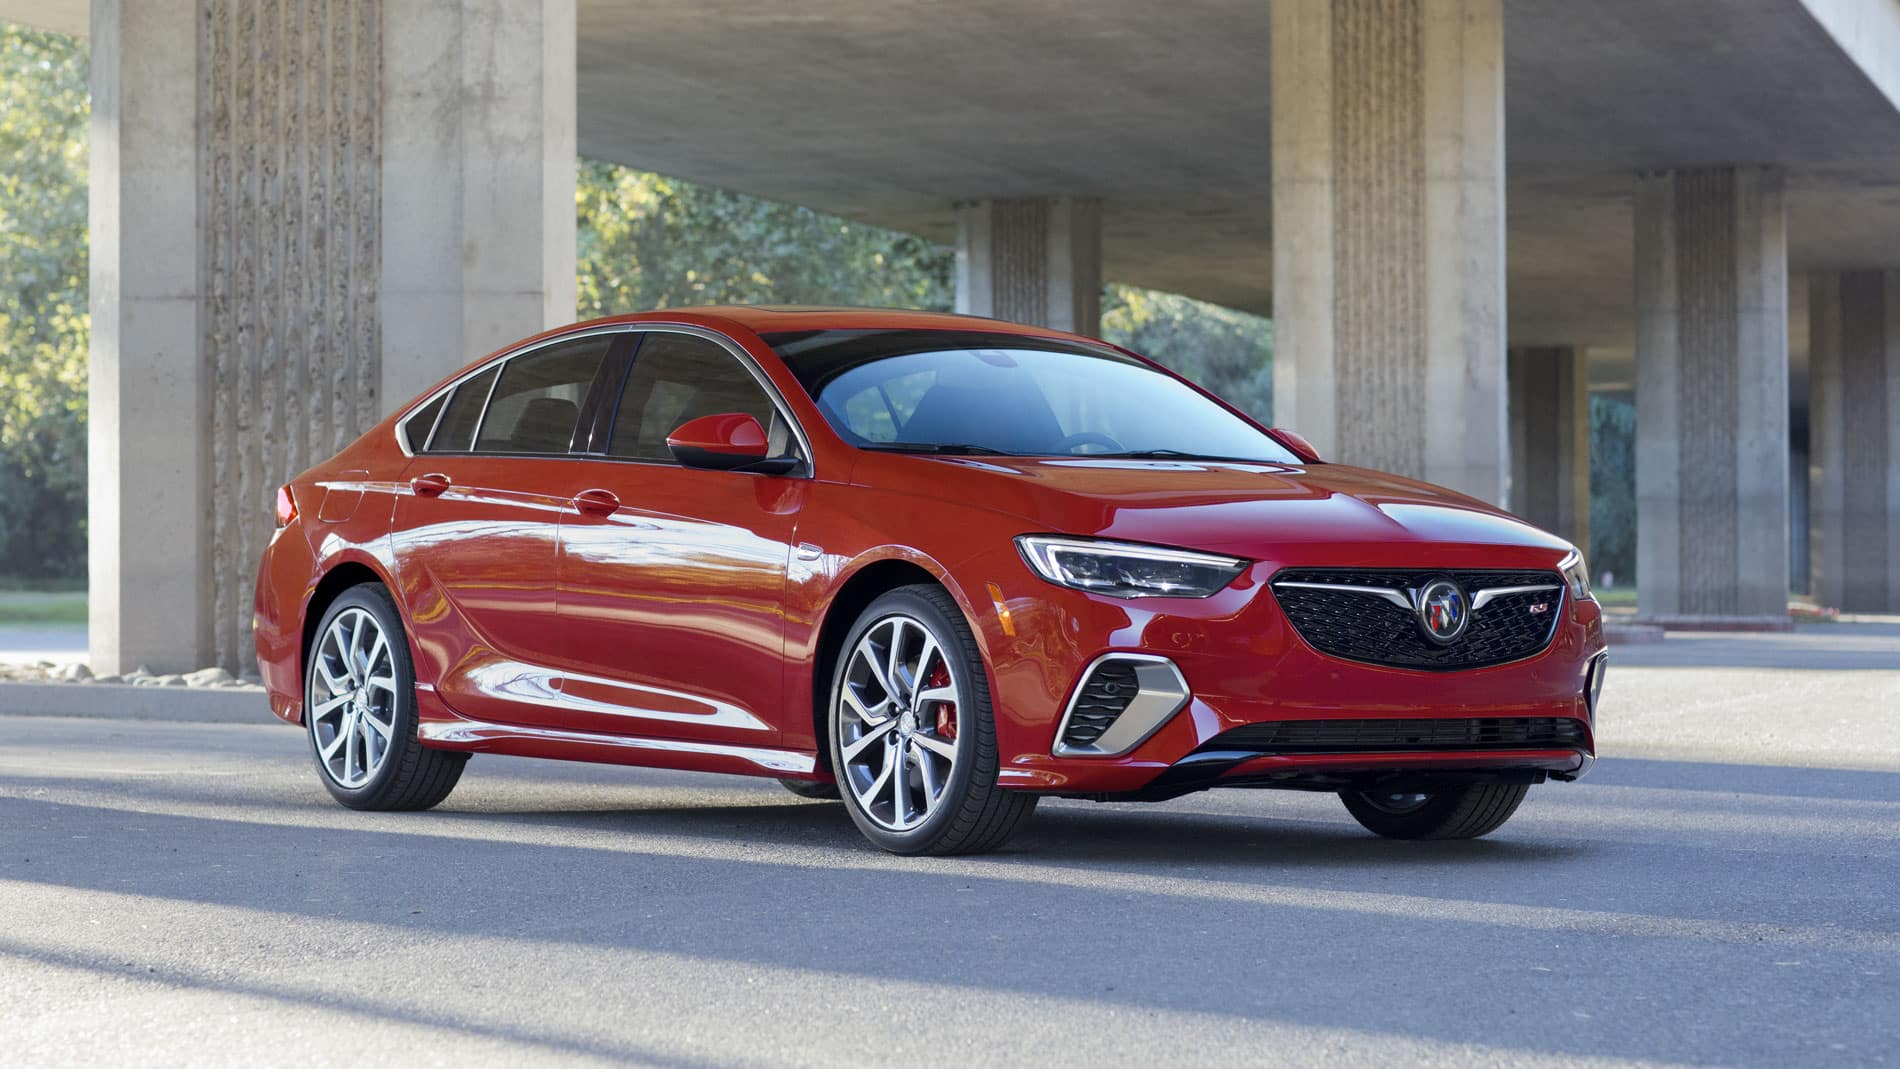 Https://www.garberautomall/new-Vehicles/buick/regal New 2021 Buick Regal Gs Price, Review, 0-60